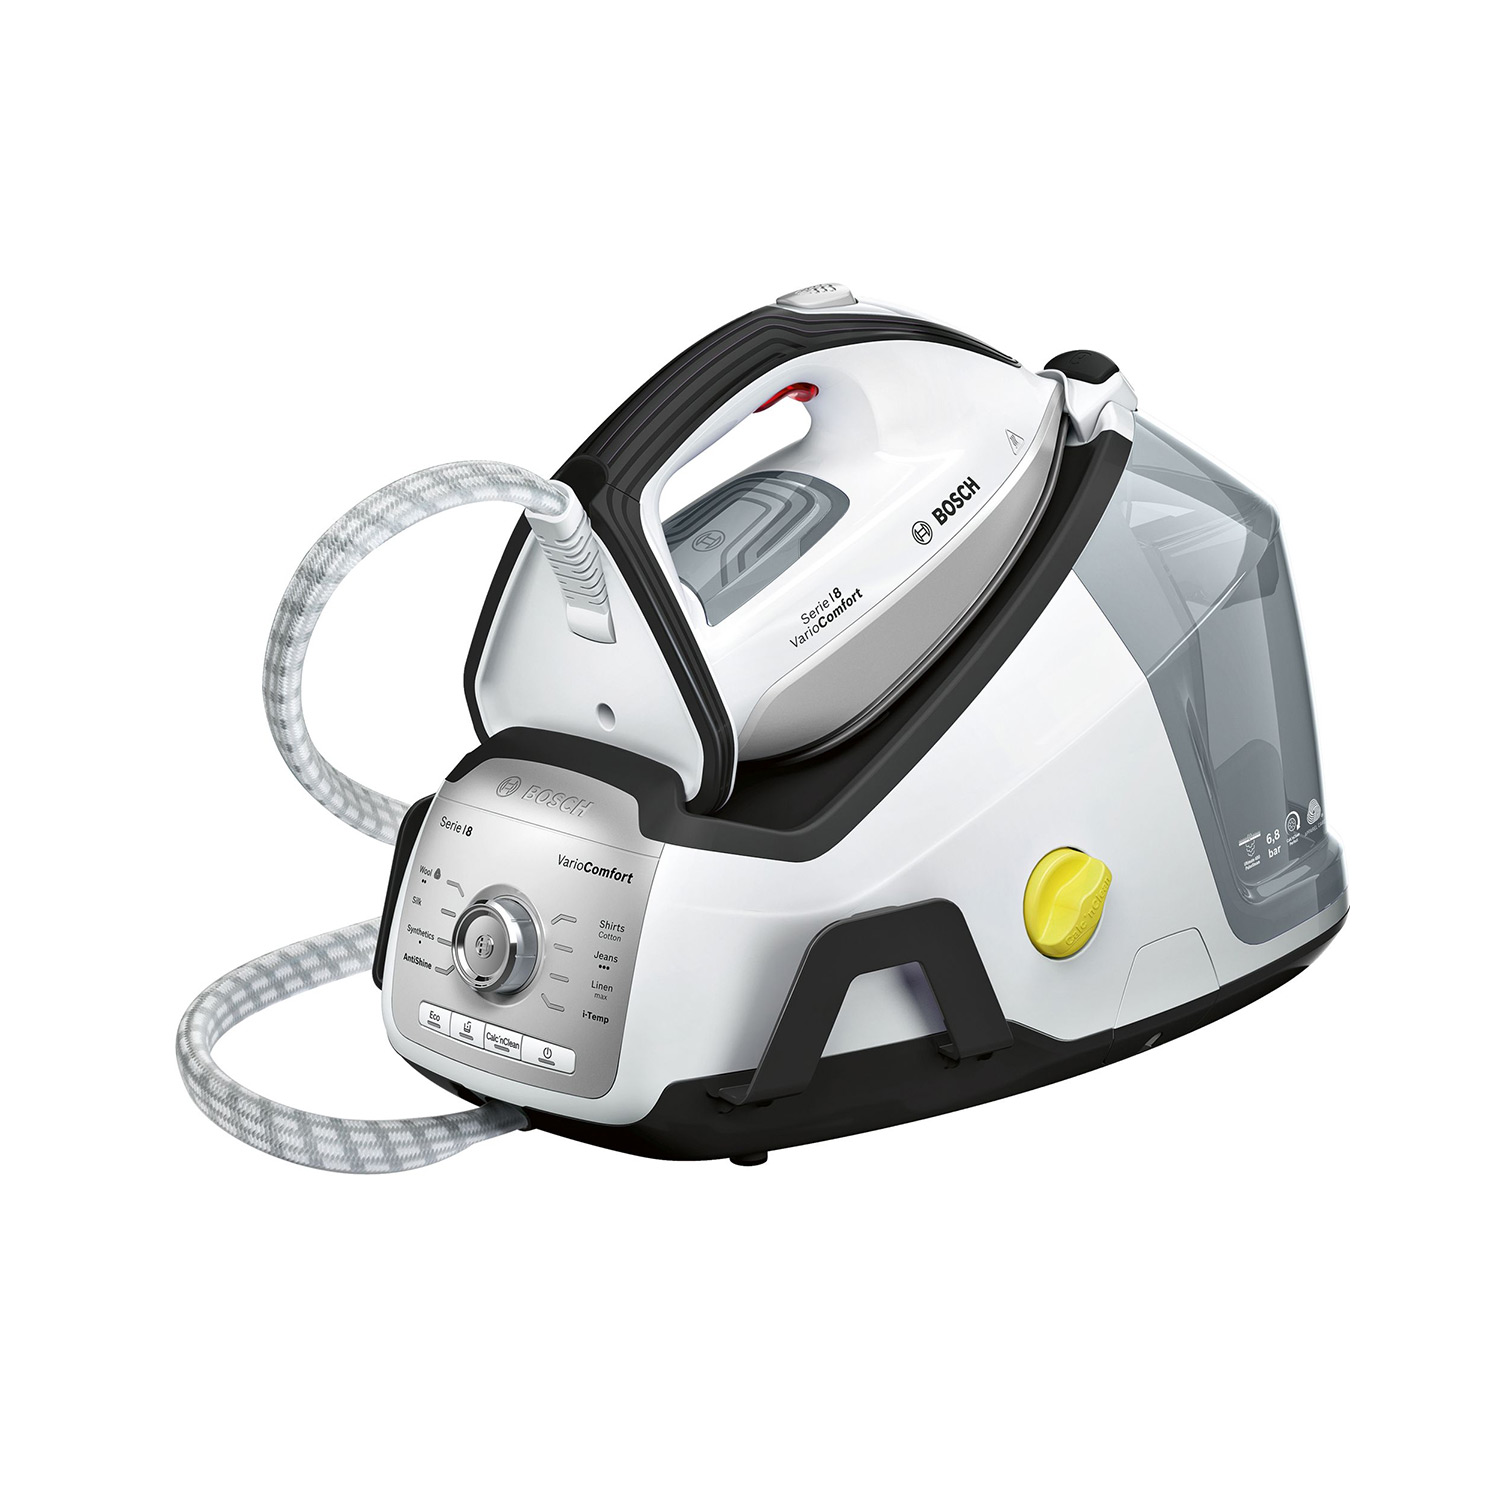 deals on steam generator irons